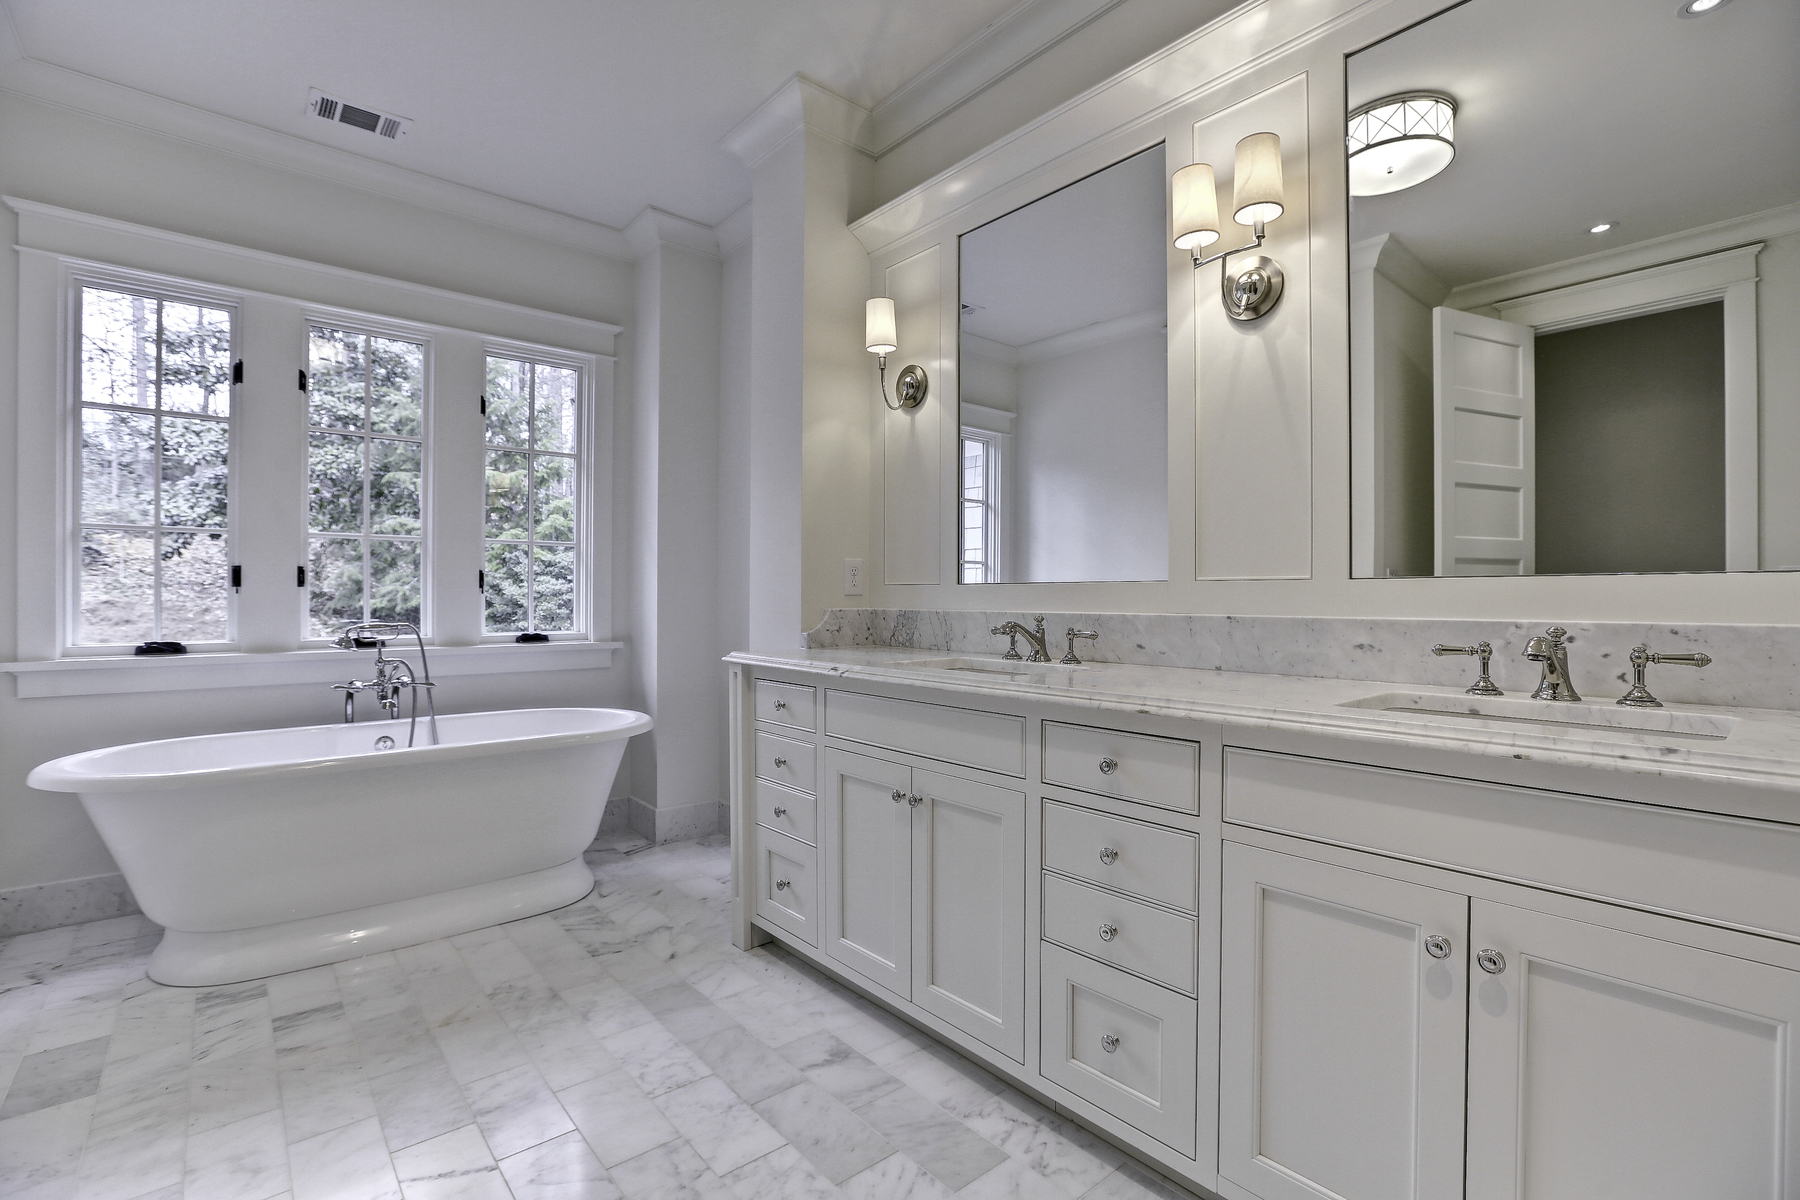 Additional photo for property listing at Deluxe Custom New Construction by Jackbilt Homes on Sought-After Street 479 Argonne Drive NW Atlanta, Georgia 30305 Estados Unidos